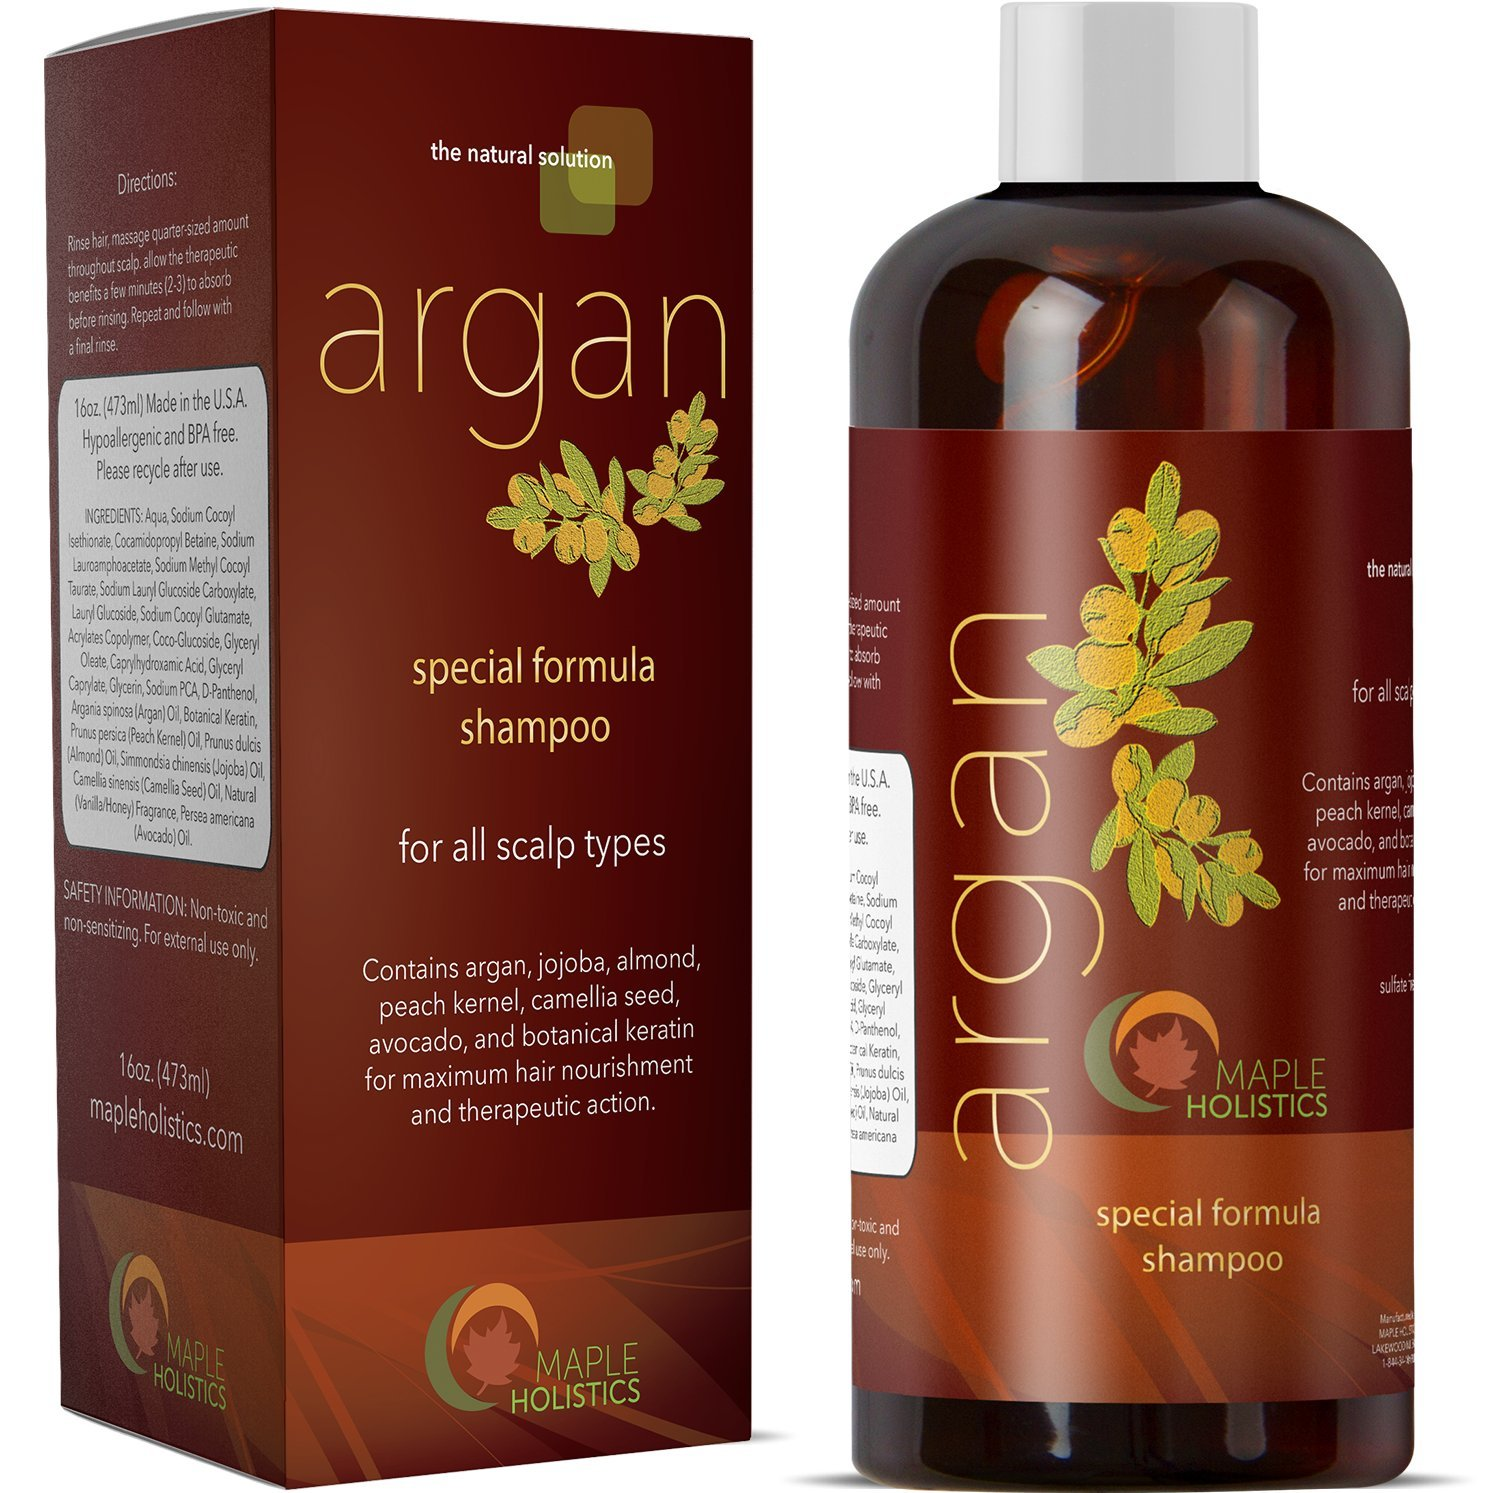 Pure Argan Oil Shampoo with Argan Jojoba Avocado Almond Peach Kernel Camellia Seed and Keratin Safe for Color Treated Hair for Men Women Teens All Hair Types Sulfate Free Silicone Free Cruelty Free by Maple Holistics